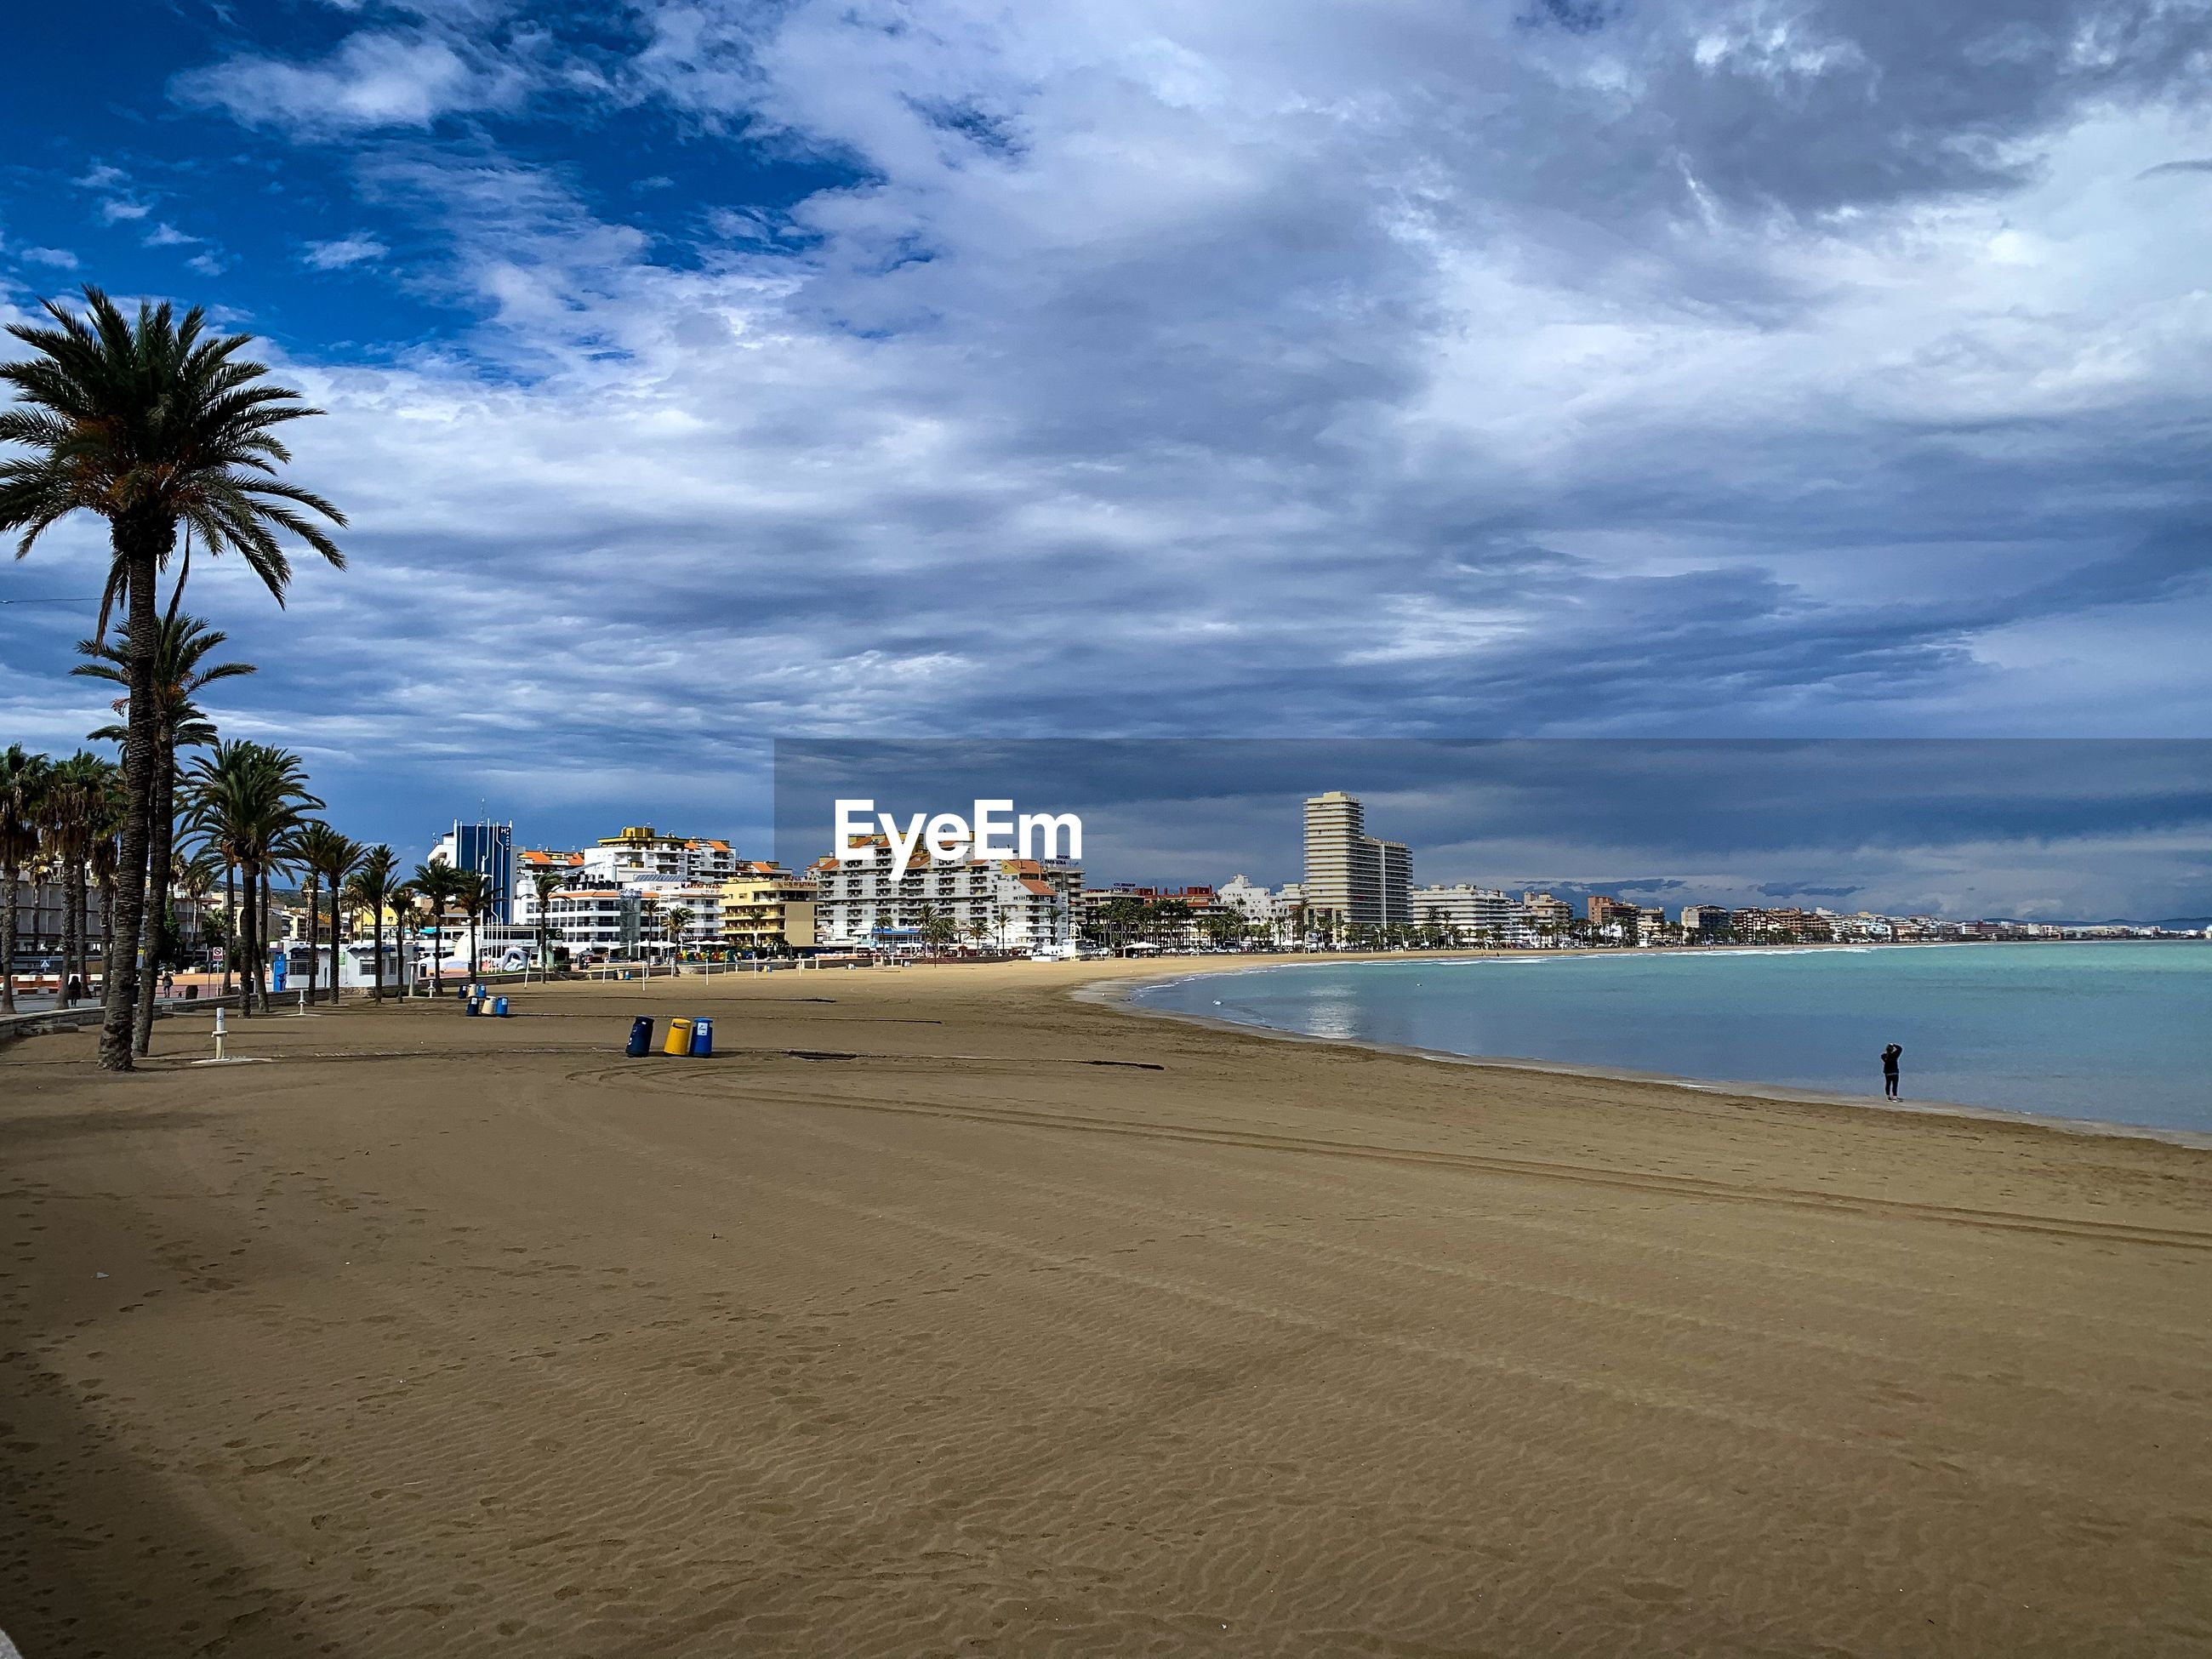 SCENIC VIEW OF BEACH BY CITY AGAINST SKY